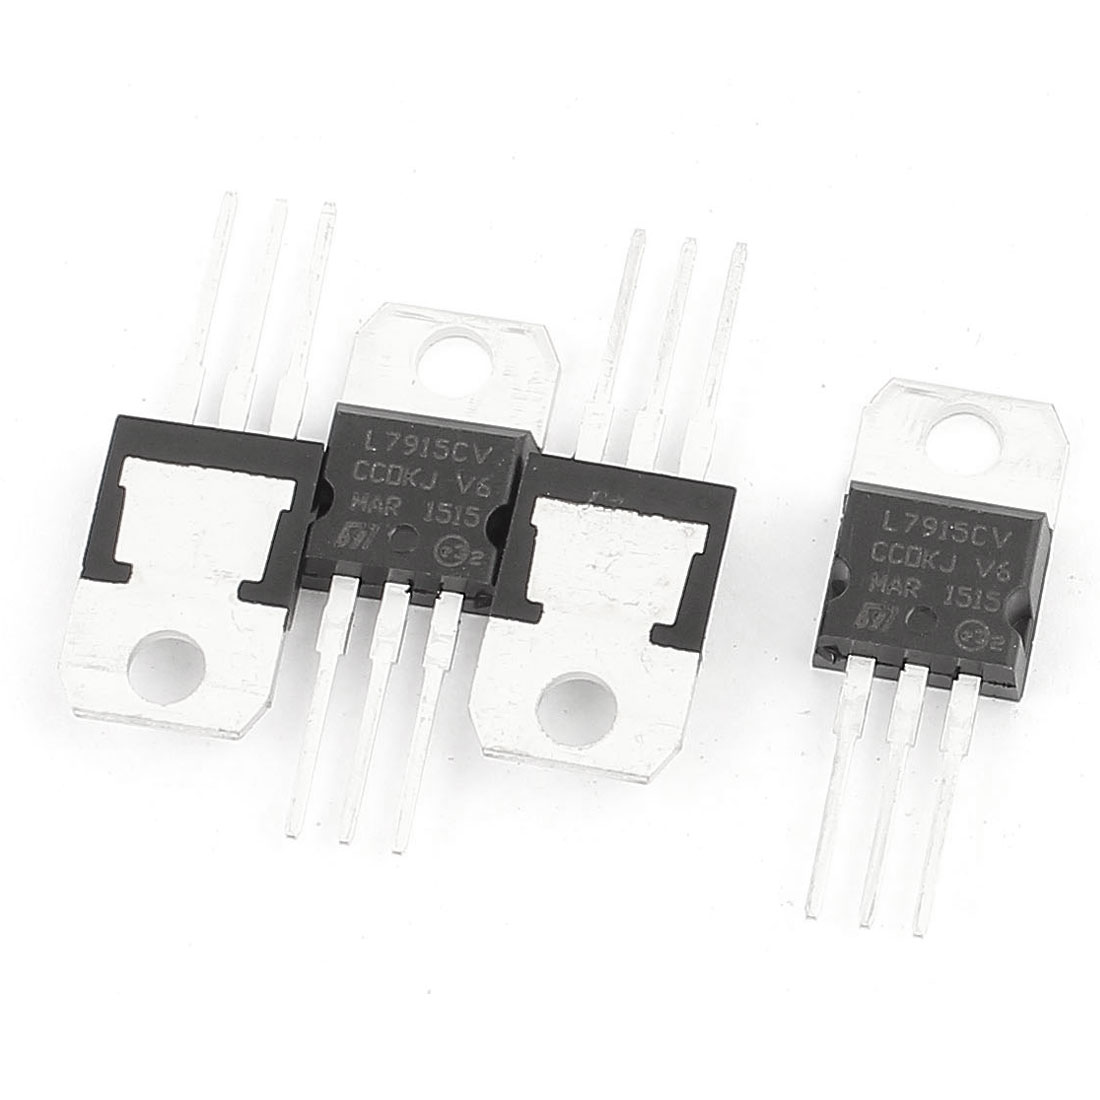 4 Pcs L7915CV 3 Terminals Negative Voltage Regulator 1.5A 15V TO-220 Package